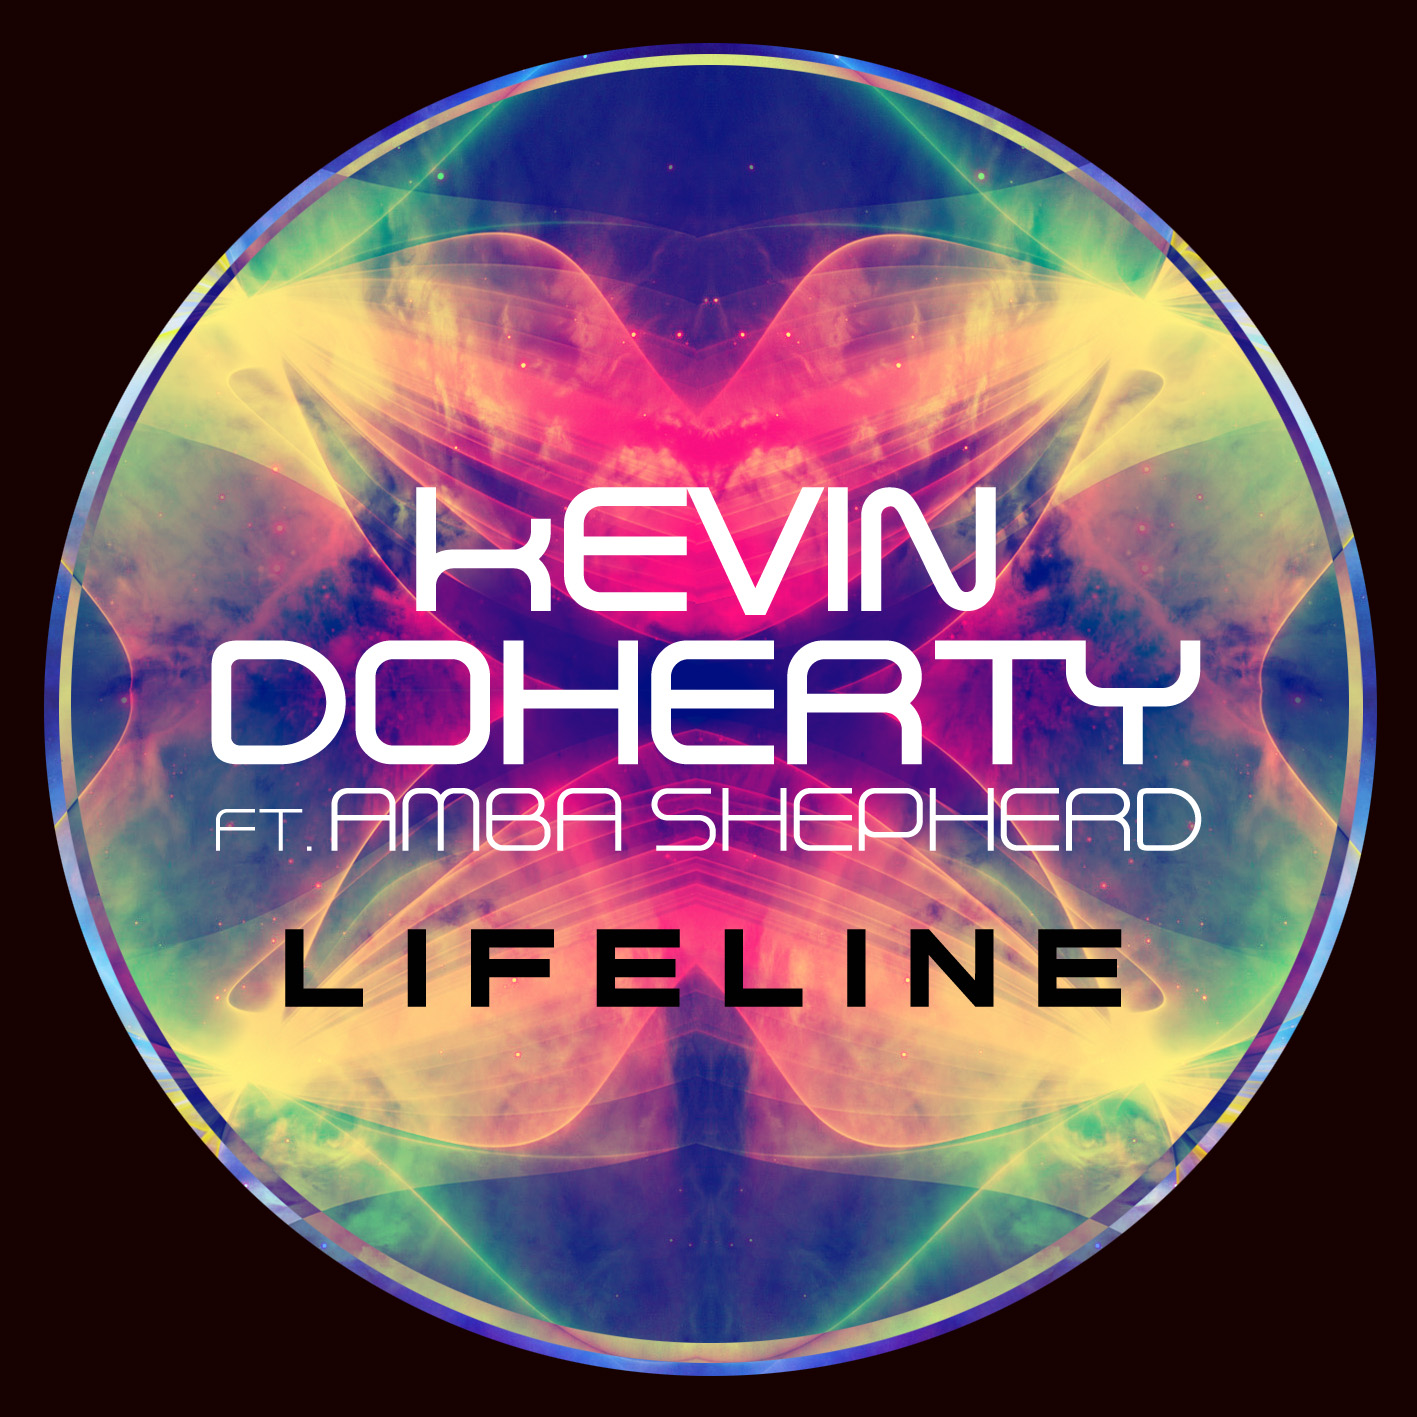 Kevin Doherty – Lifeline